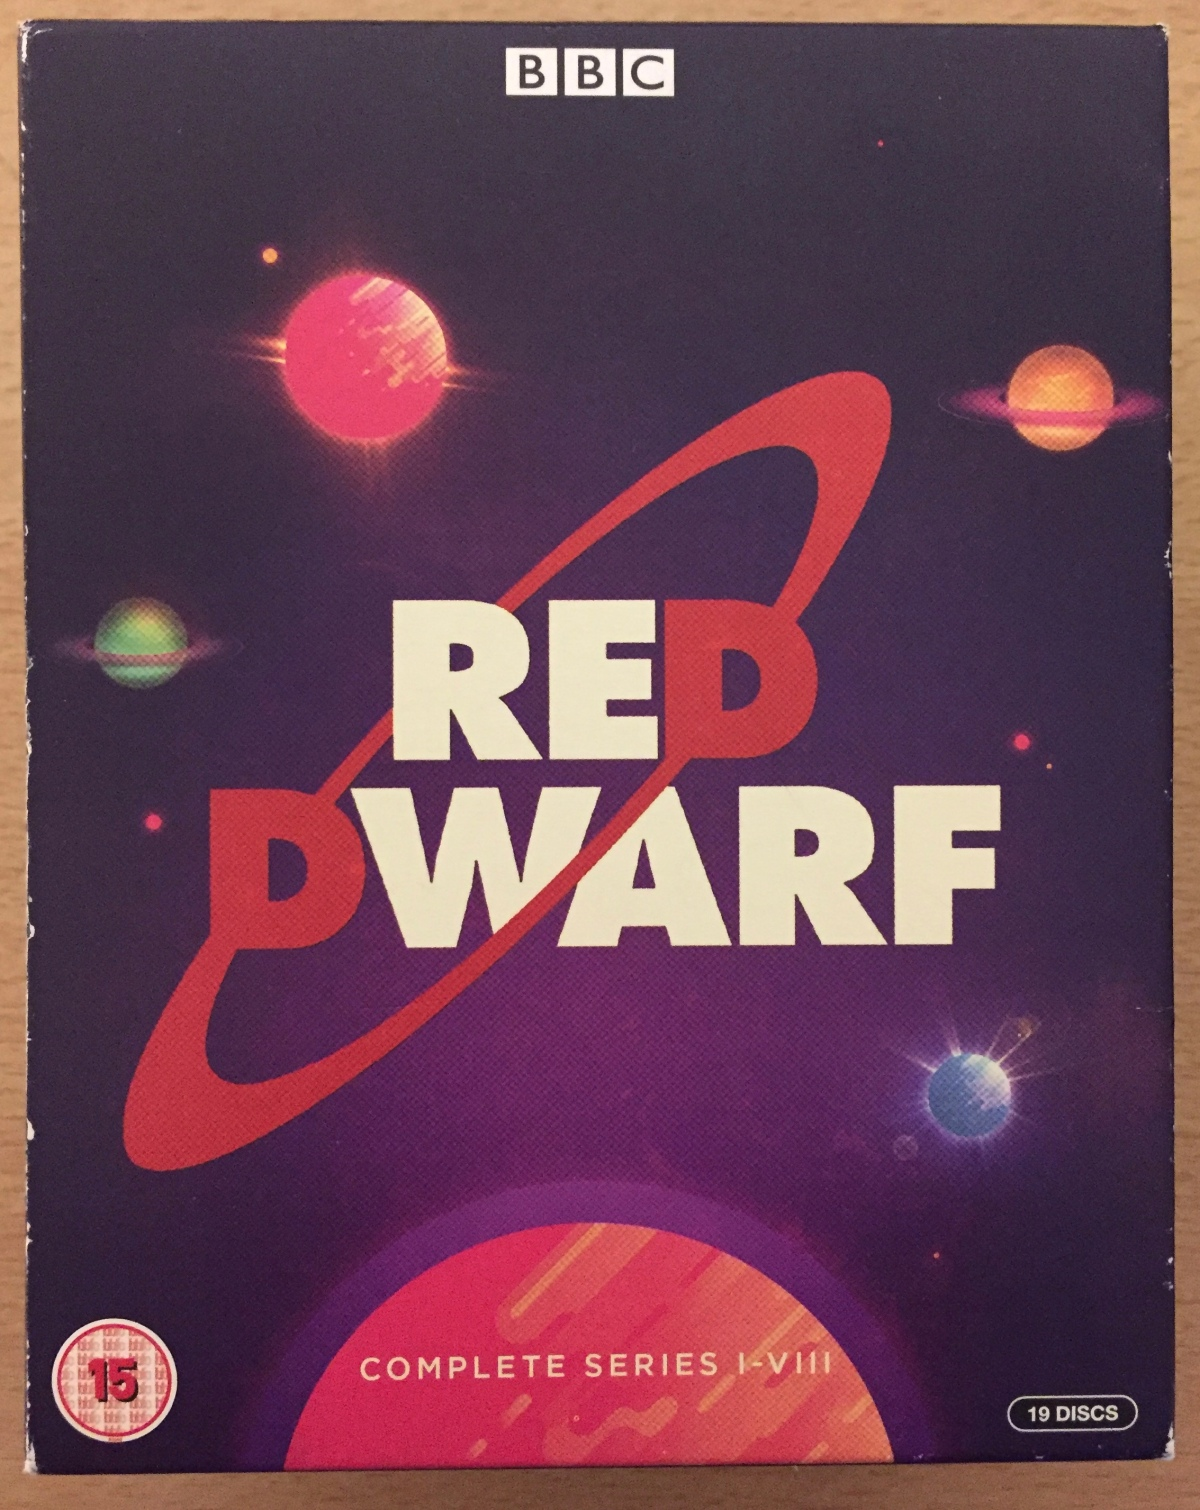 Red Dwarf – Series 1-8 – Blu-ray Box Set Review